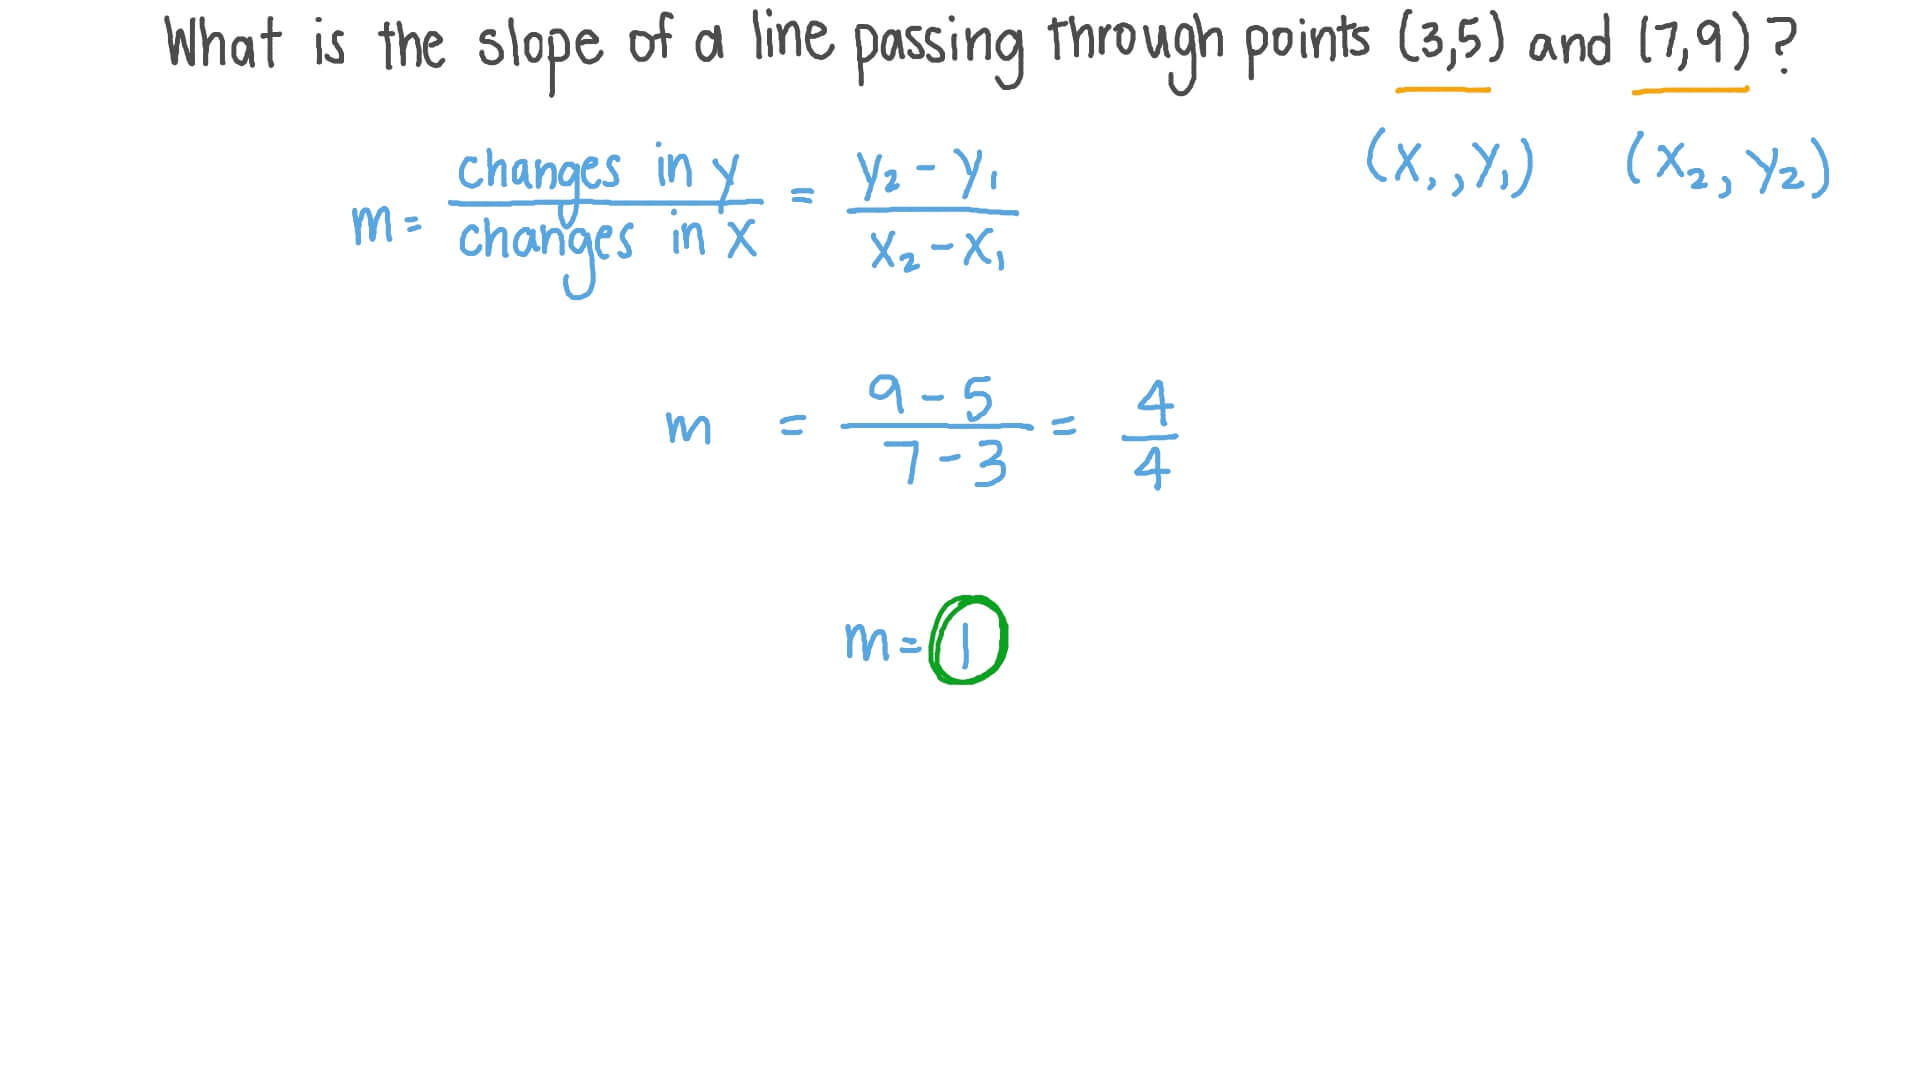 slope intercept form for a line passing through two points  Finding the Slope of a Line Passing through Two Points